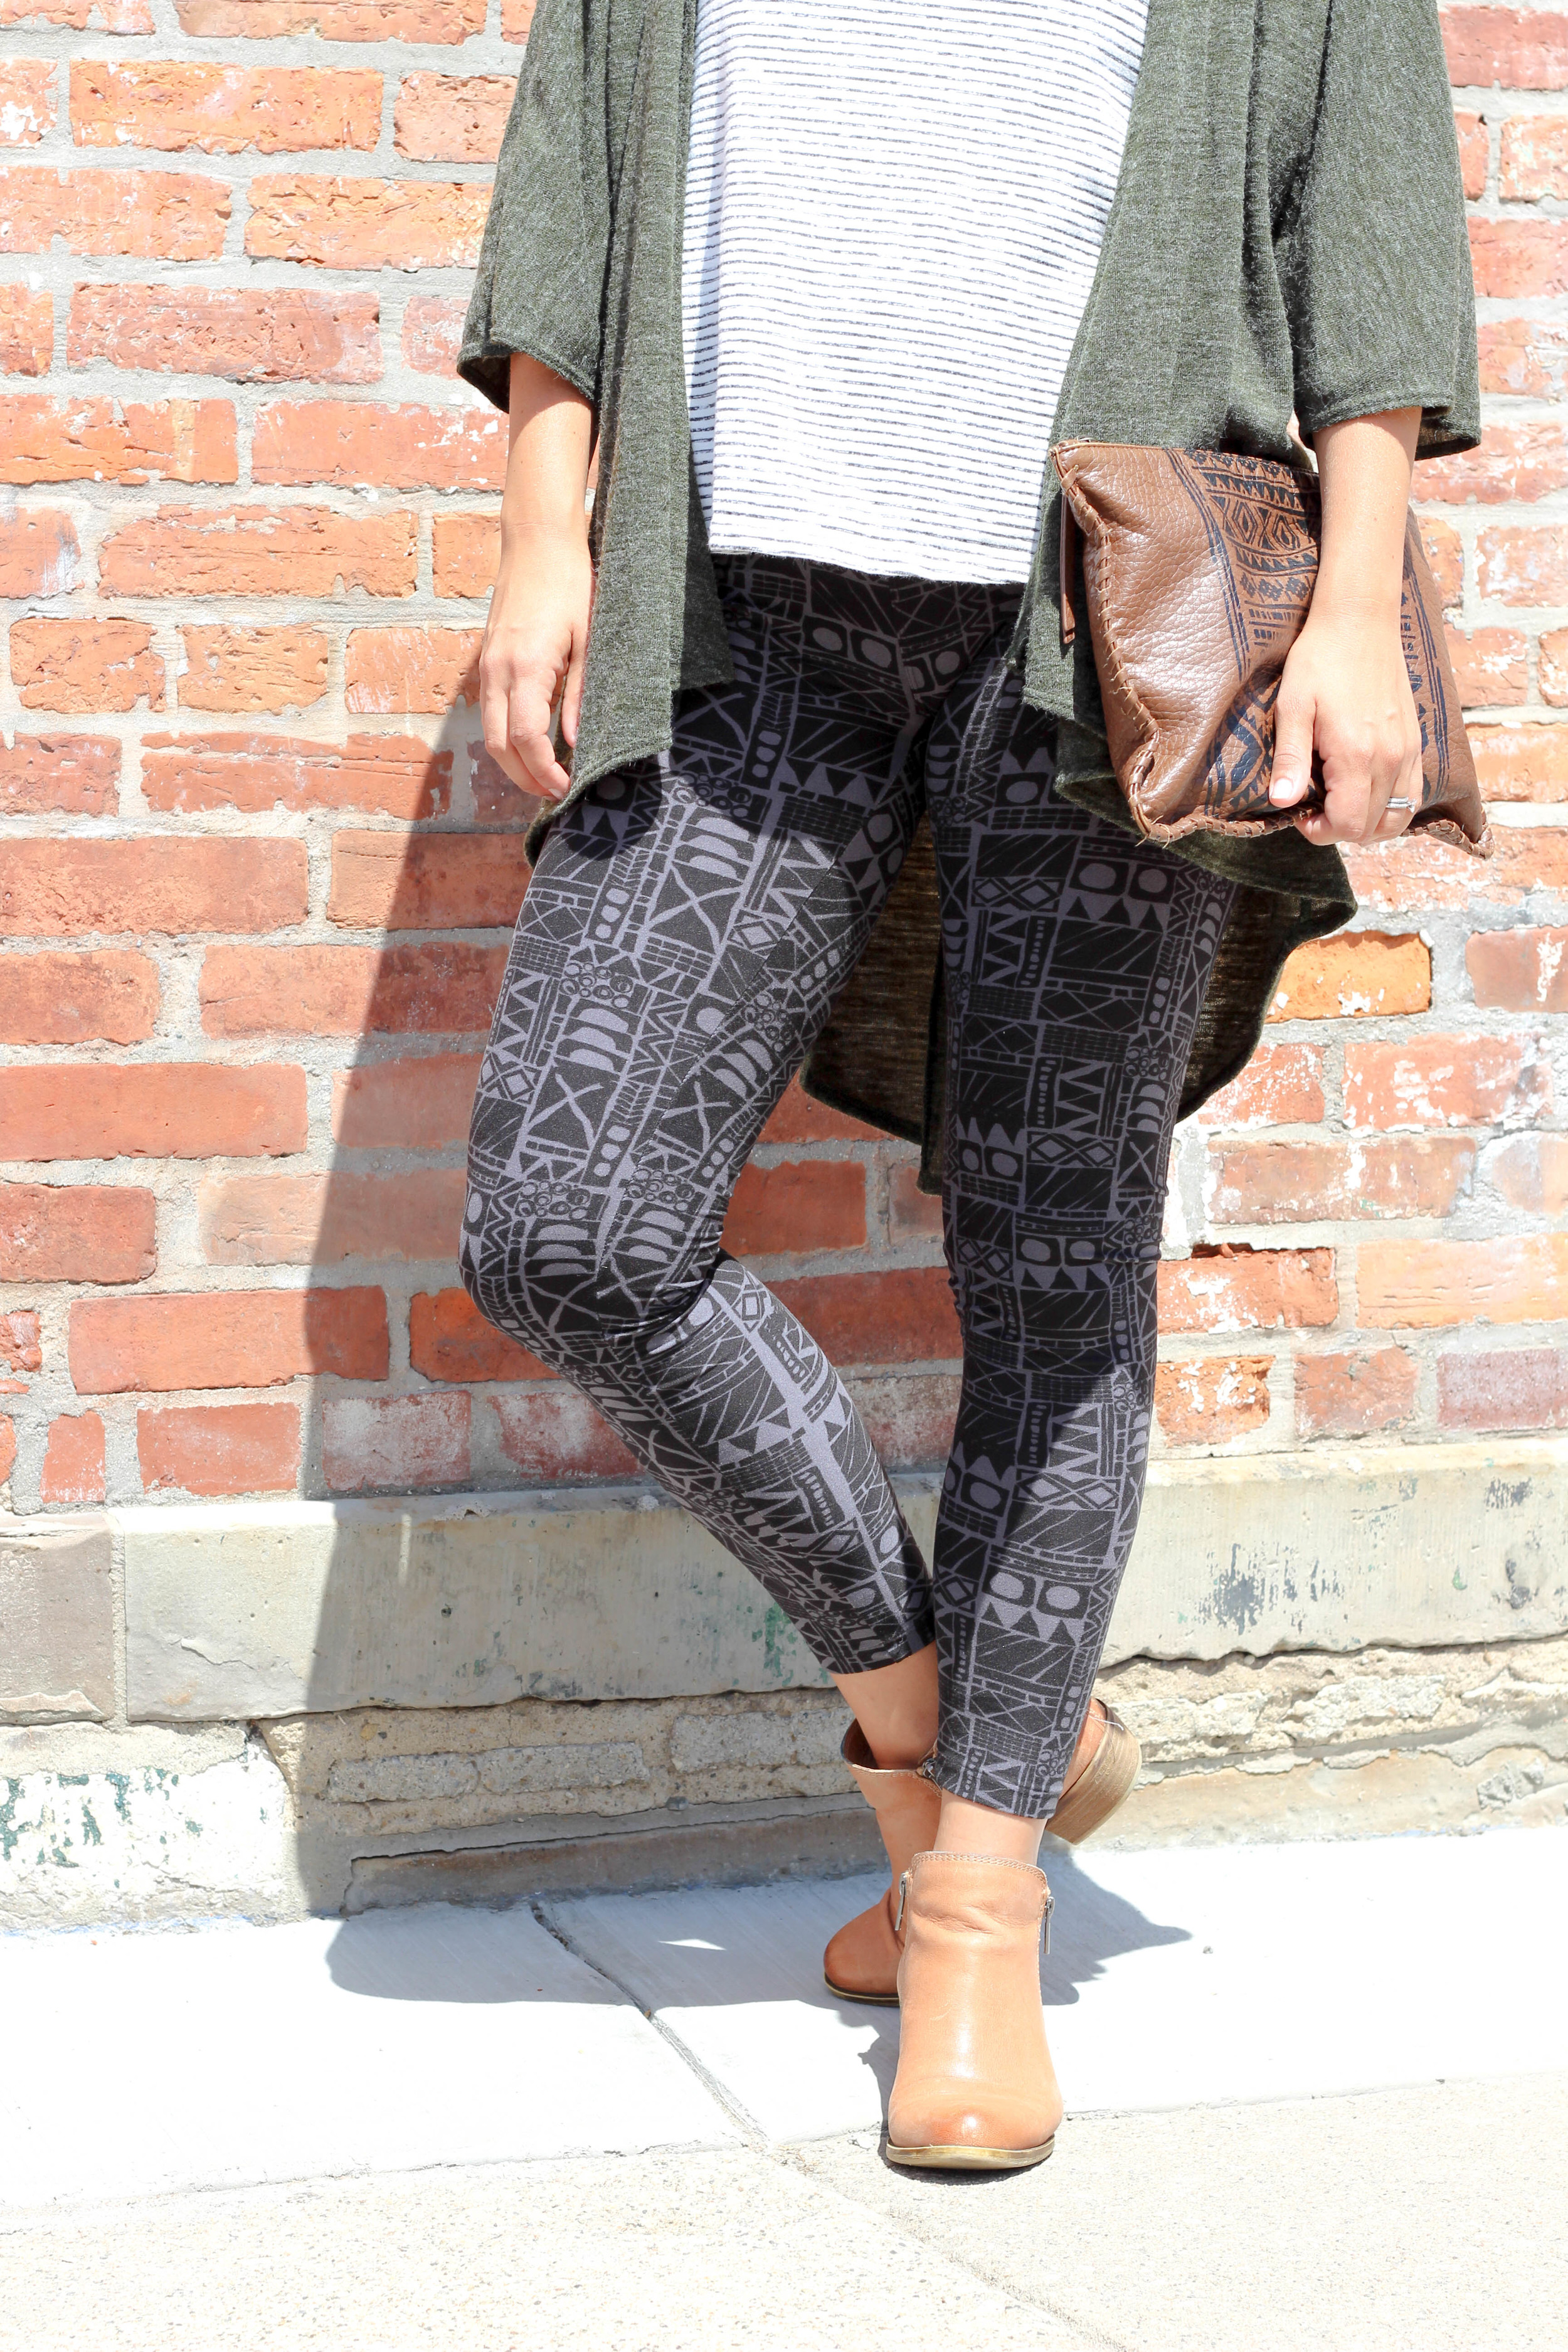 pattern leggings with strips, mixing patterns done right, how to style printed leggings, printed leggings for women, comfort fashion, bohemian, patterned pants, army green, mix and match prints, how to wear stripes, lucky brand booties, fall boots, fall booties, brown leather booties,